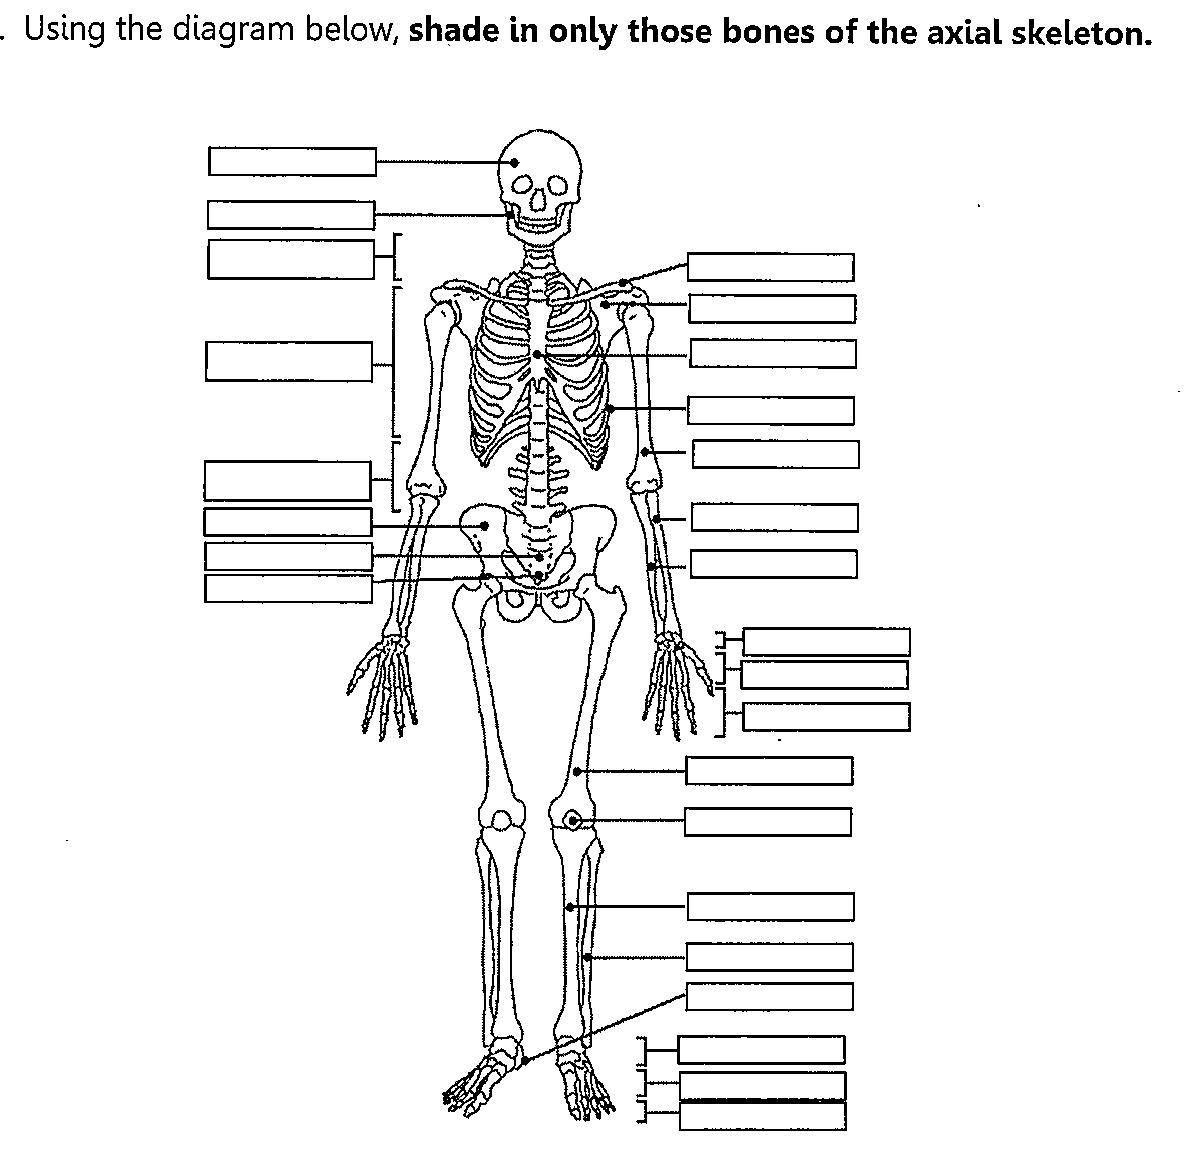 Skeletal System Fill In The Blank Worksheets Skeletal System Skeletal System Printable Skeletal System Anatomy